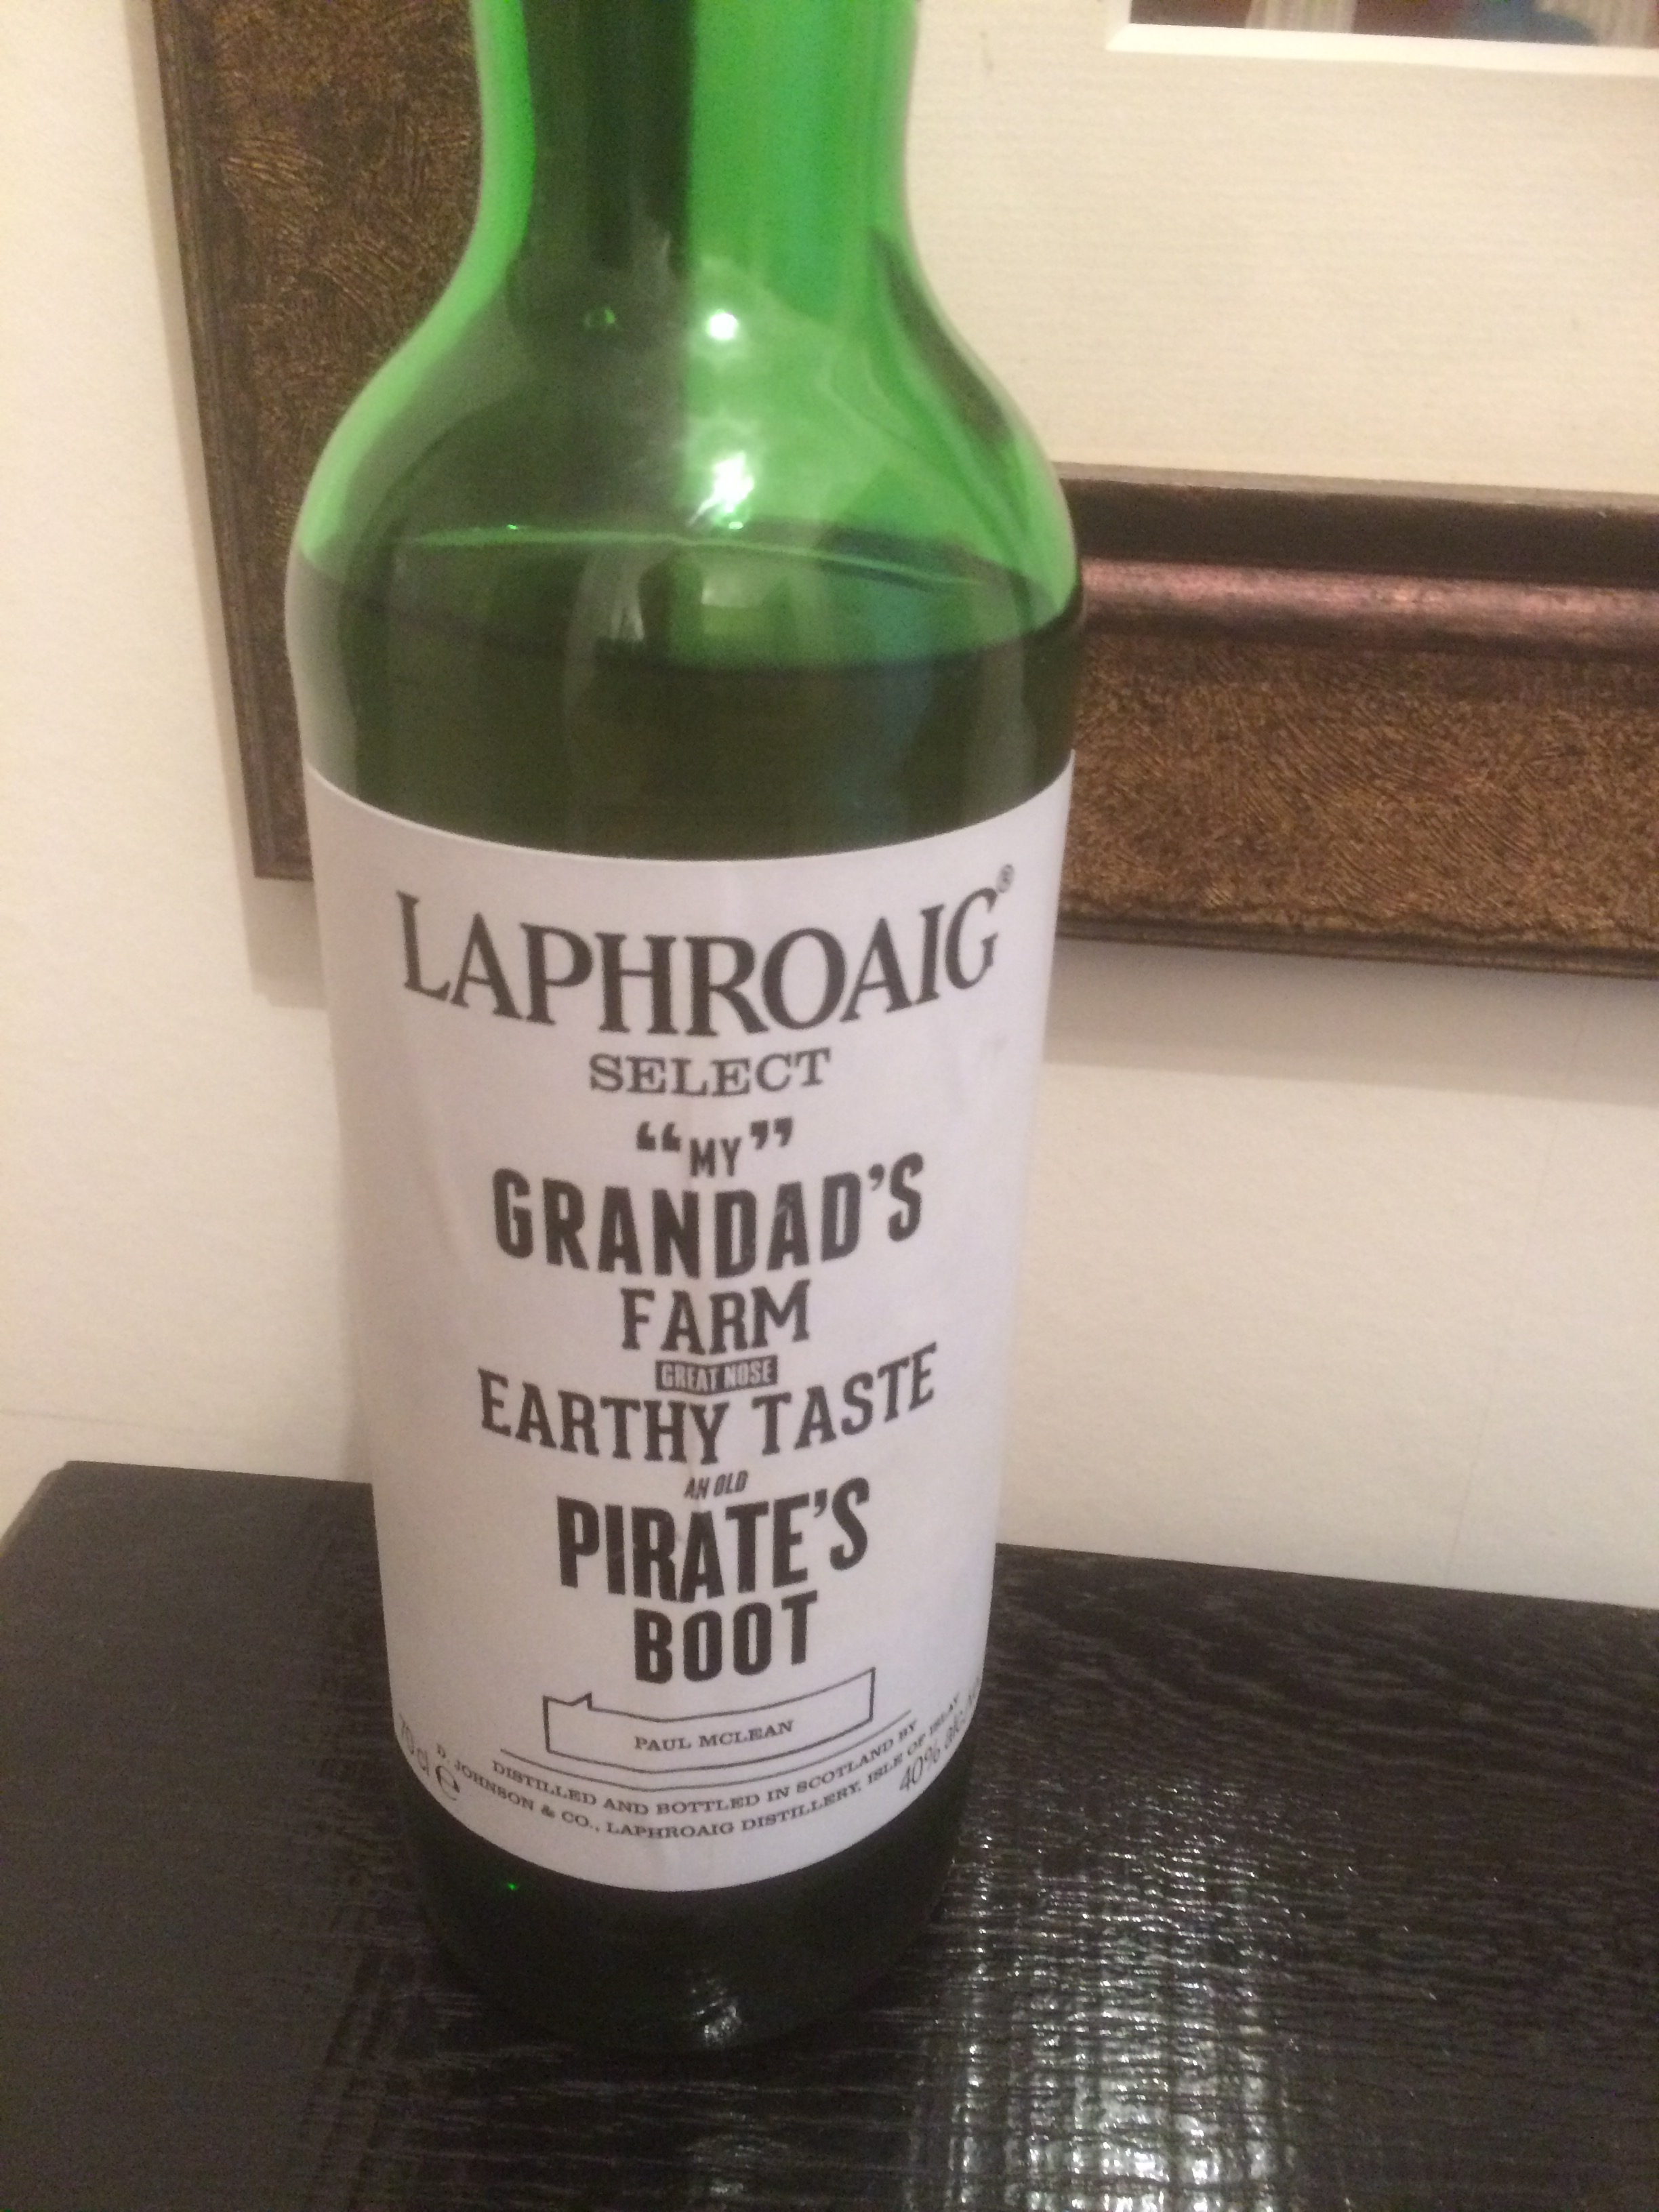 Bottle of Laphroig